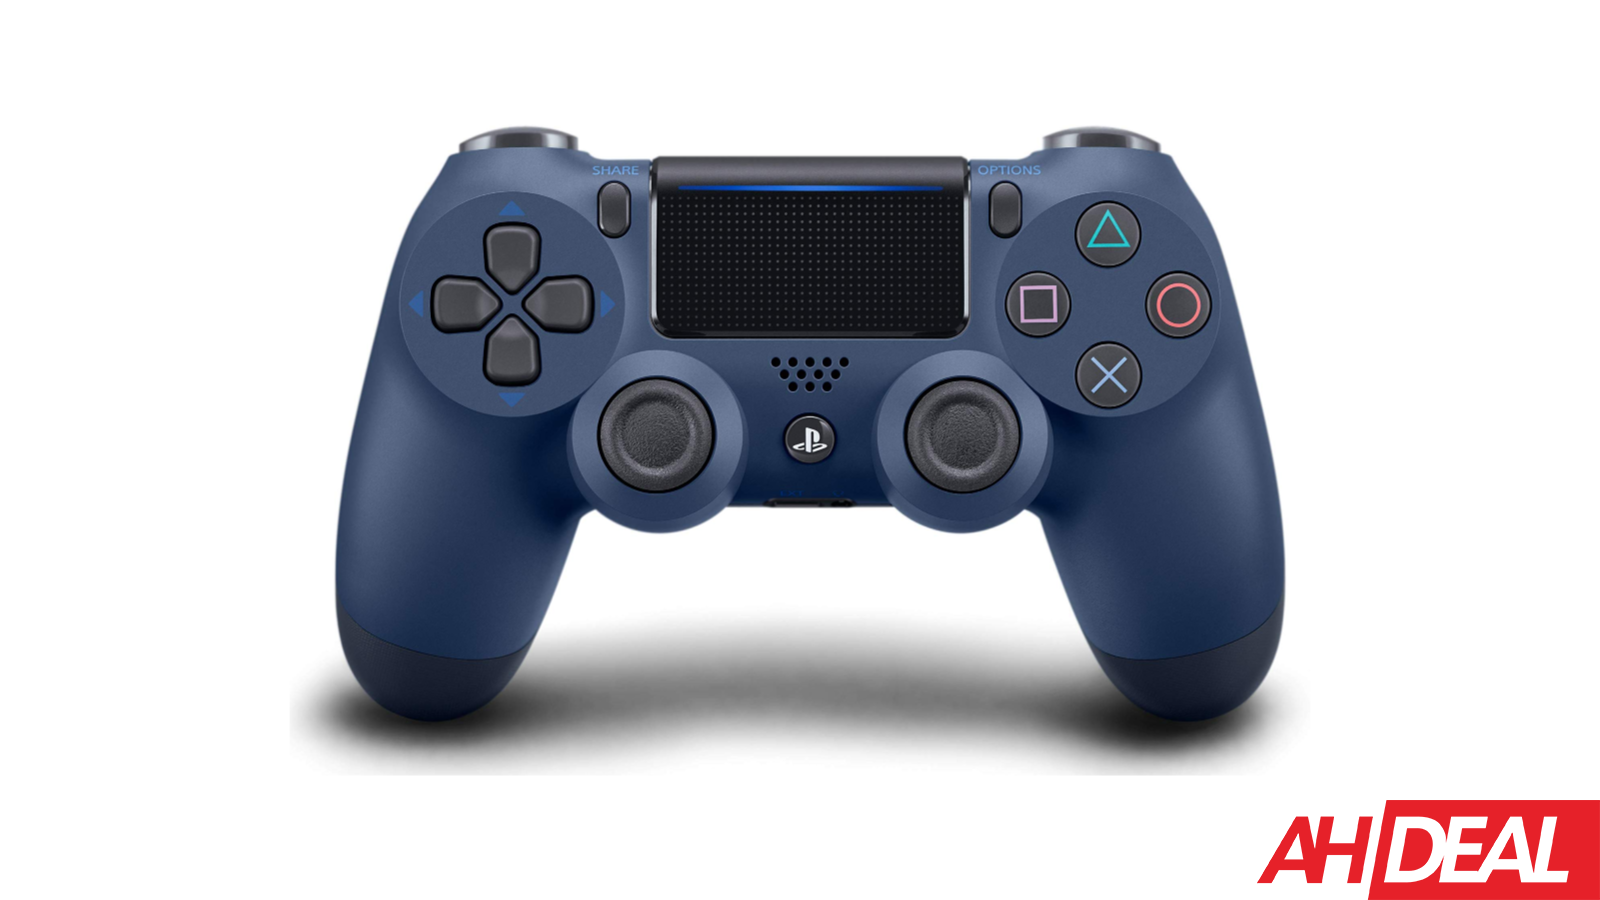 Playstation 4 Dualshock 4 Controllers 39 Amazon Cyber Monday 2018 Deals Dualshock Ps4 Wireless Controller Wireless Controller